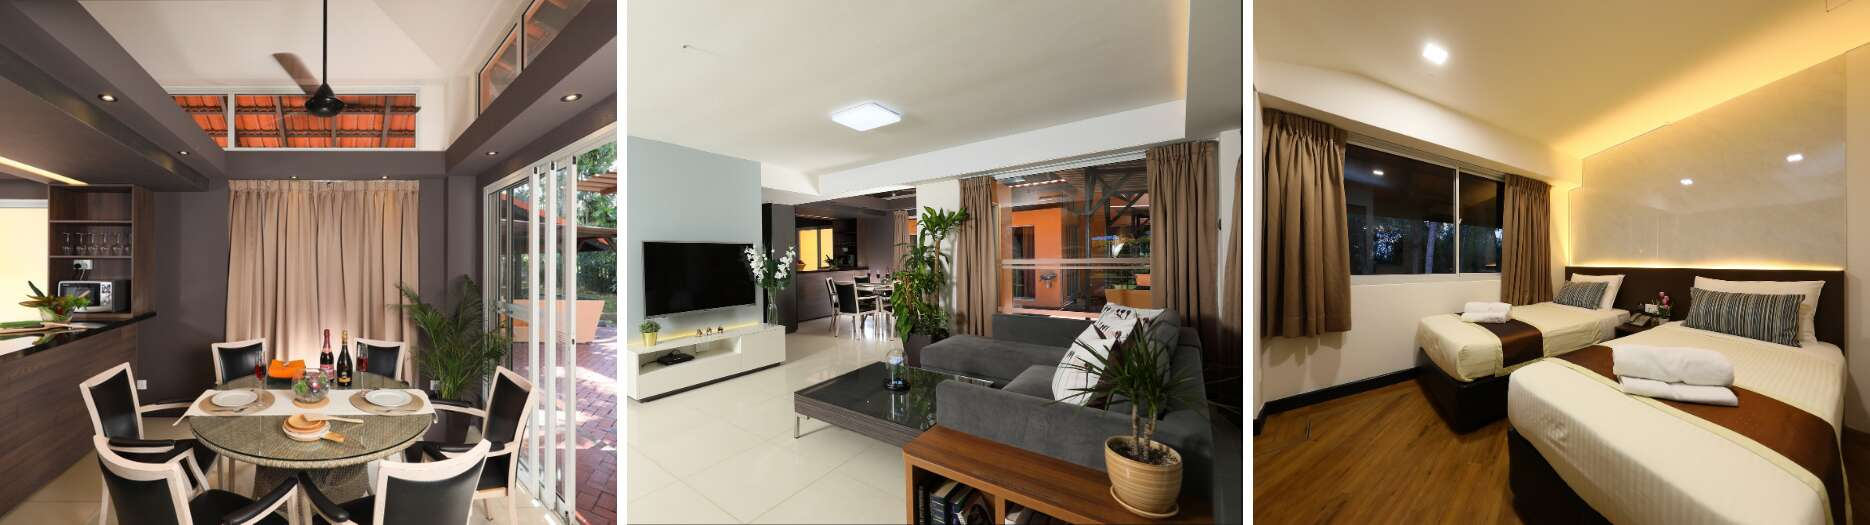 NSRCC Bungalow for SAFRA Banner Image_1870x525px